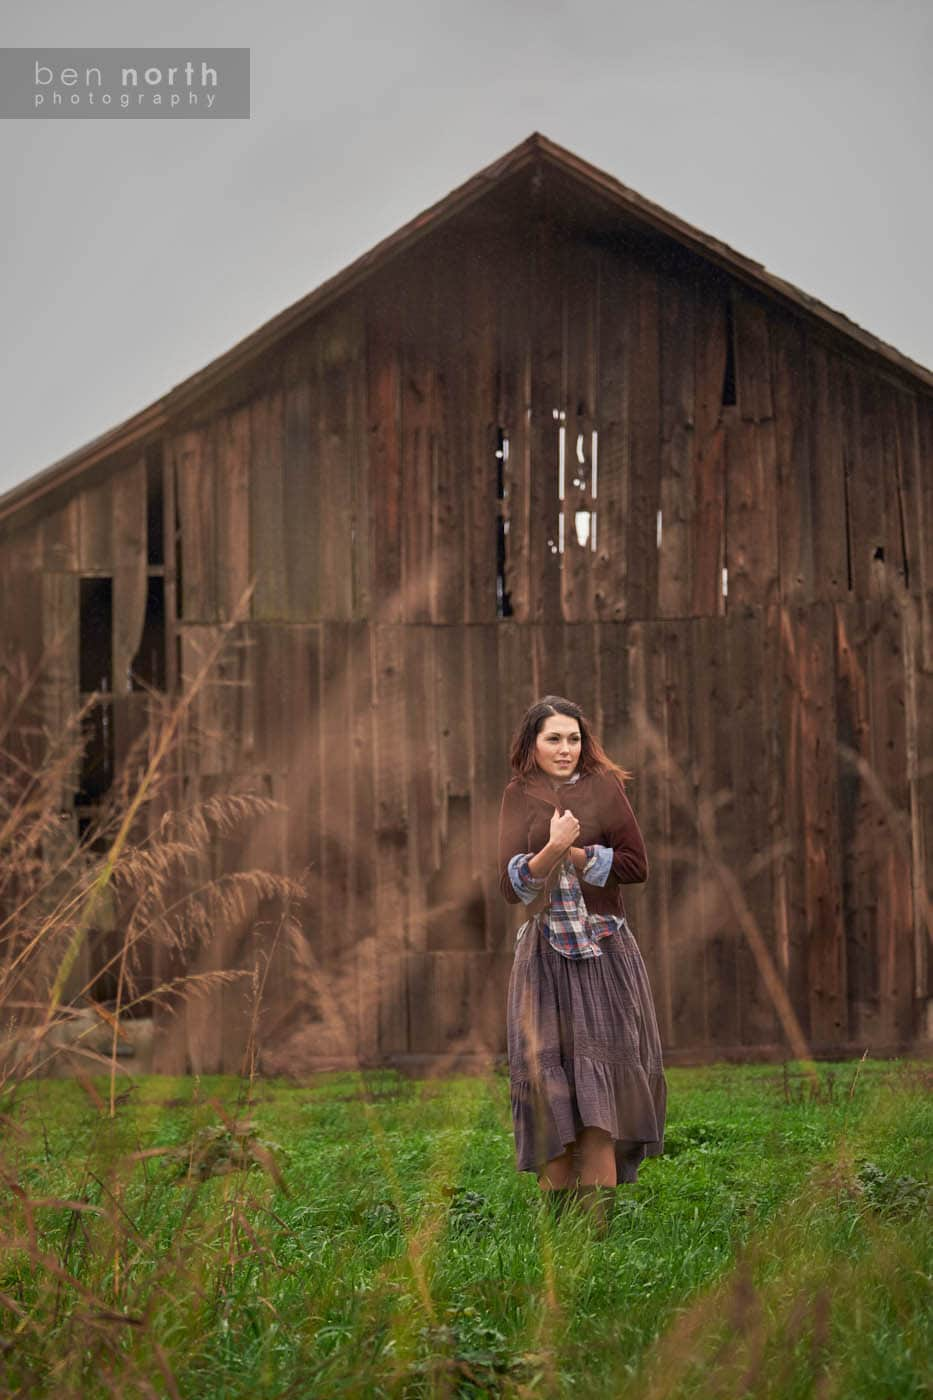 A young woman wearing Free People clothing standing in a field next to a barn on a cold, Winter day.